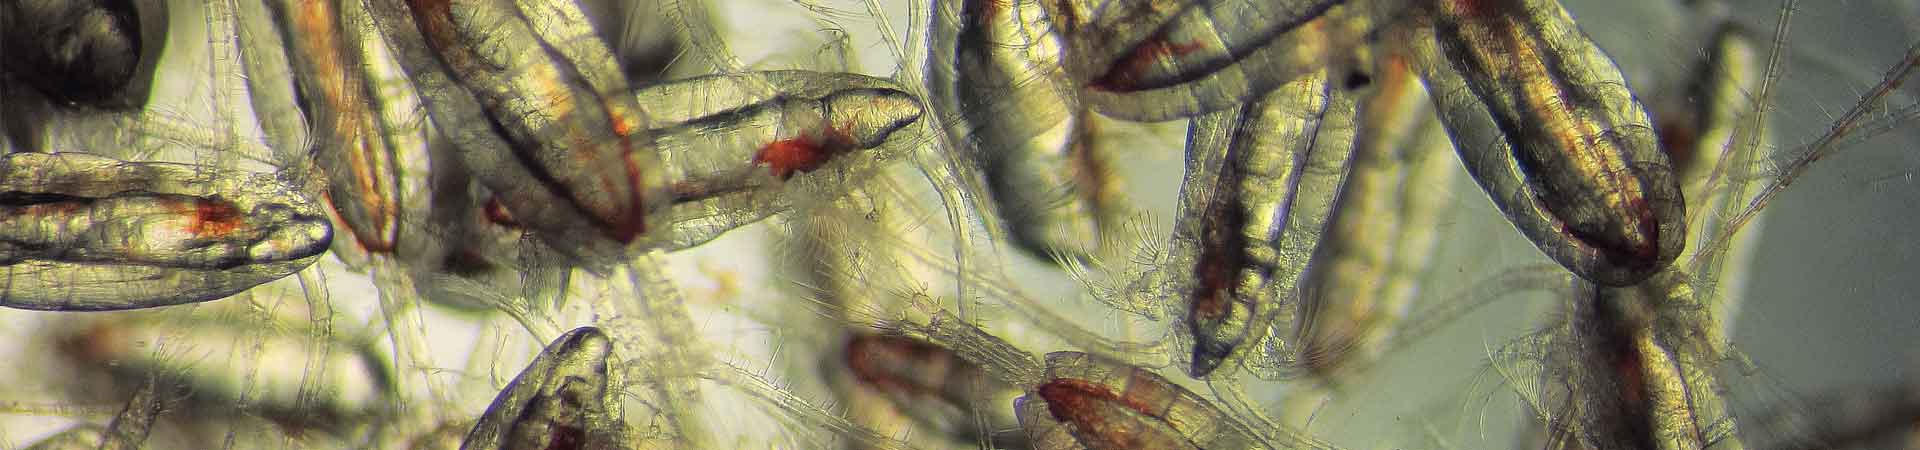 Microscope photo of several calanoid copepods (animal plankton) from the Arctic